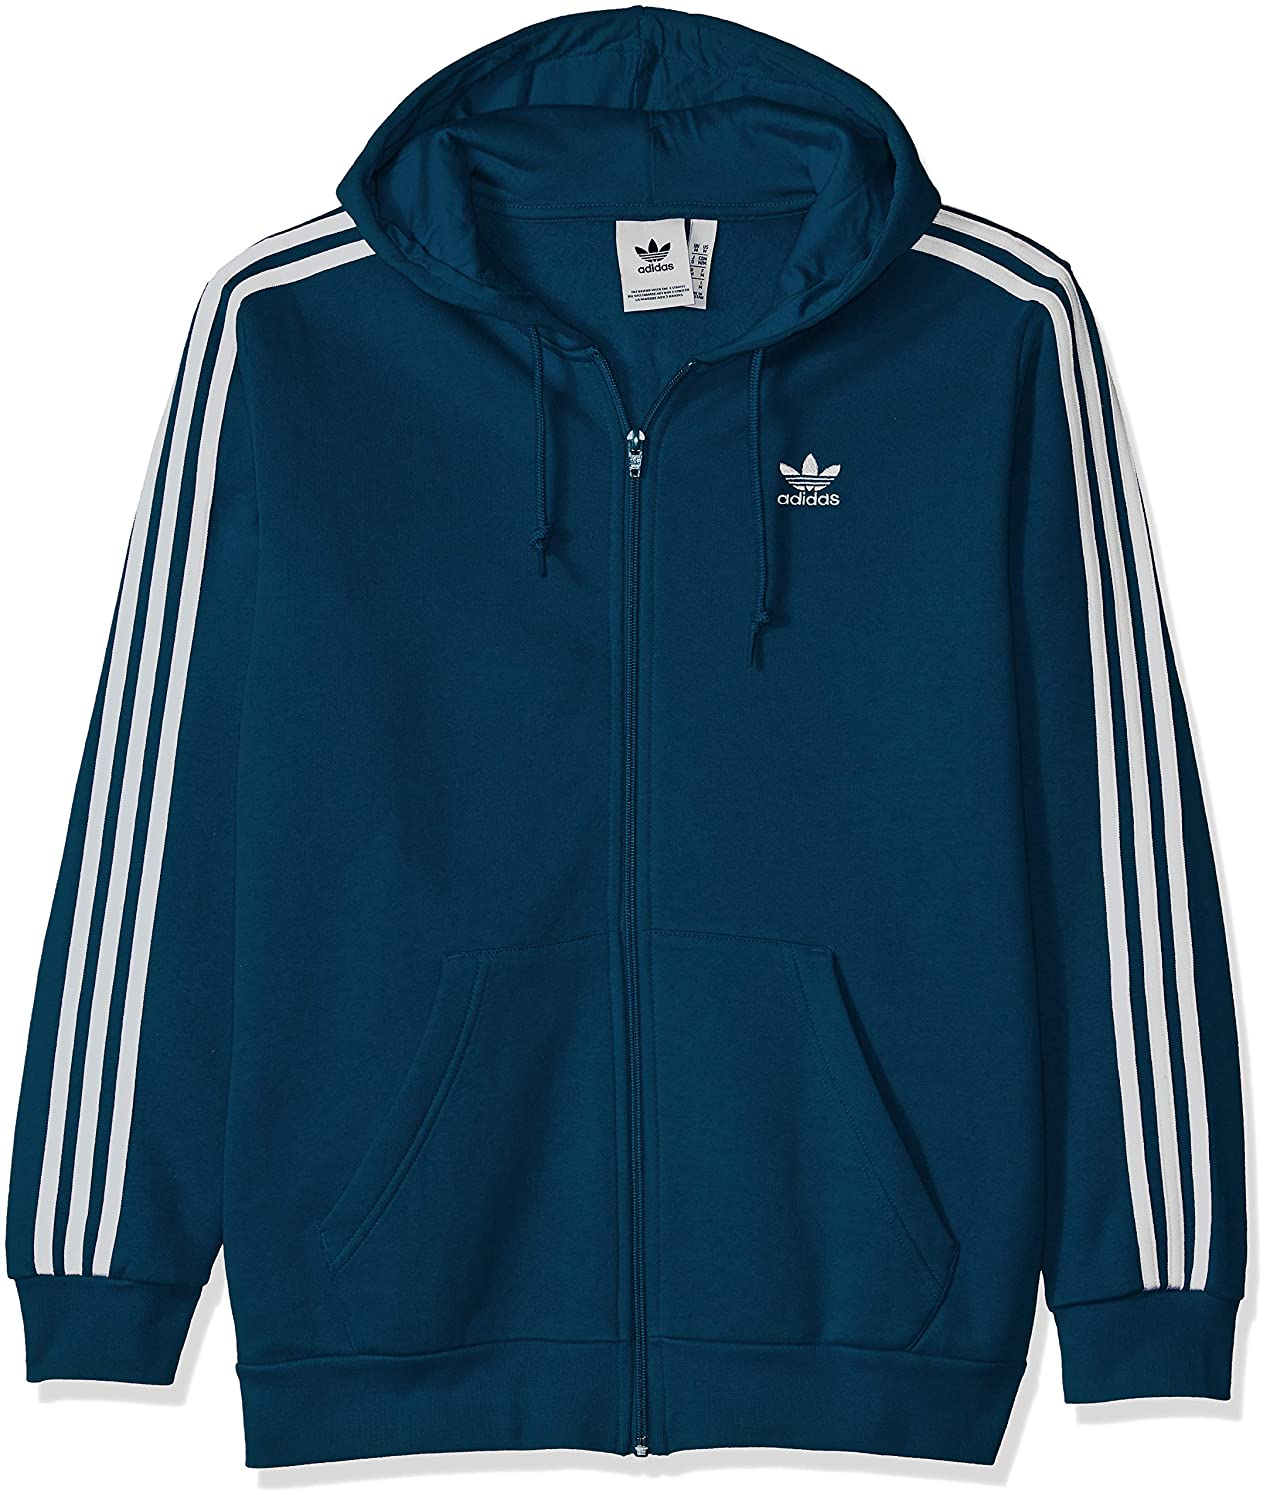 adidas Originals Men's 3-Stripes Zip Hoodie